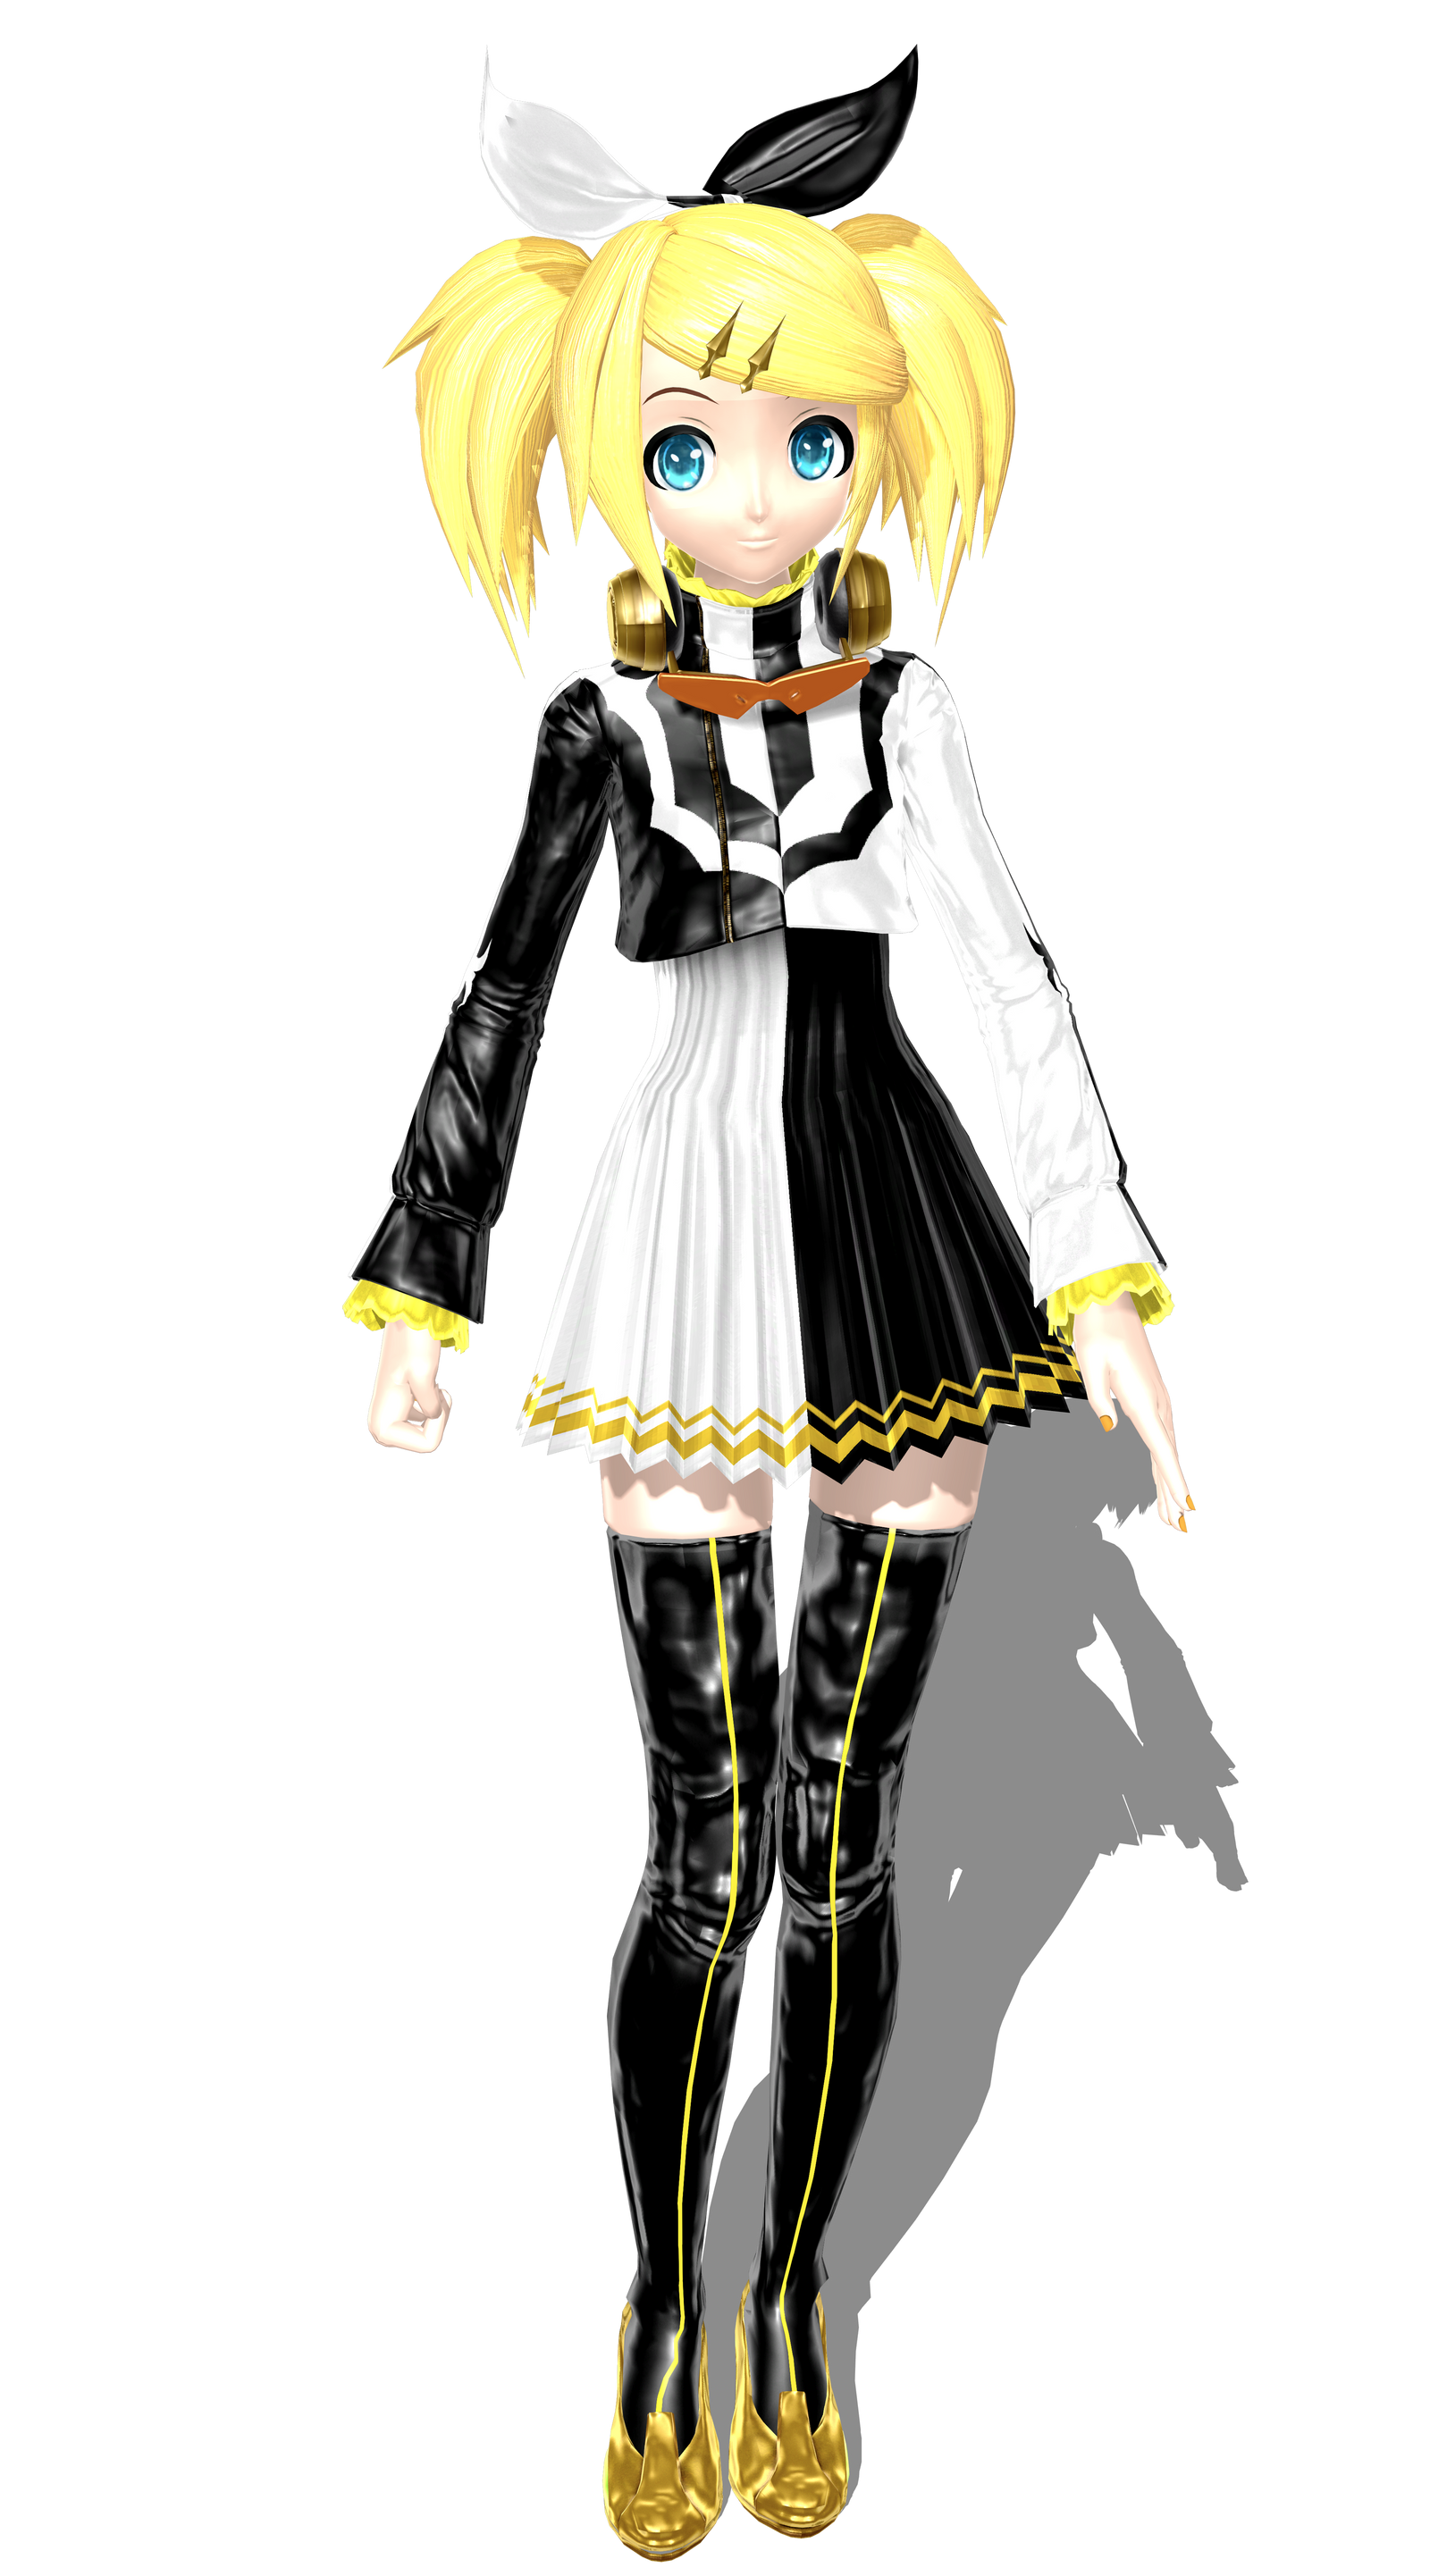 [Len/Rin Kagamine] Which outfit? - Cosplay.com